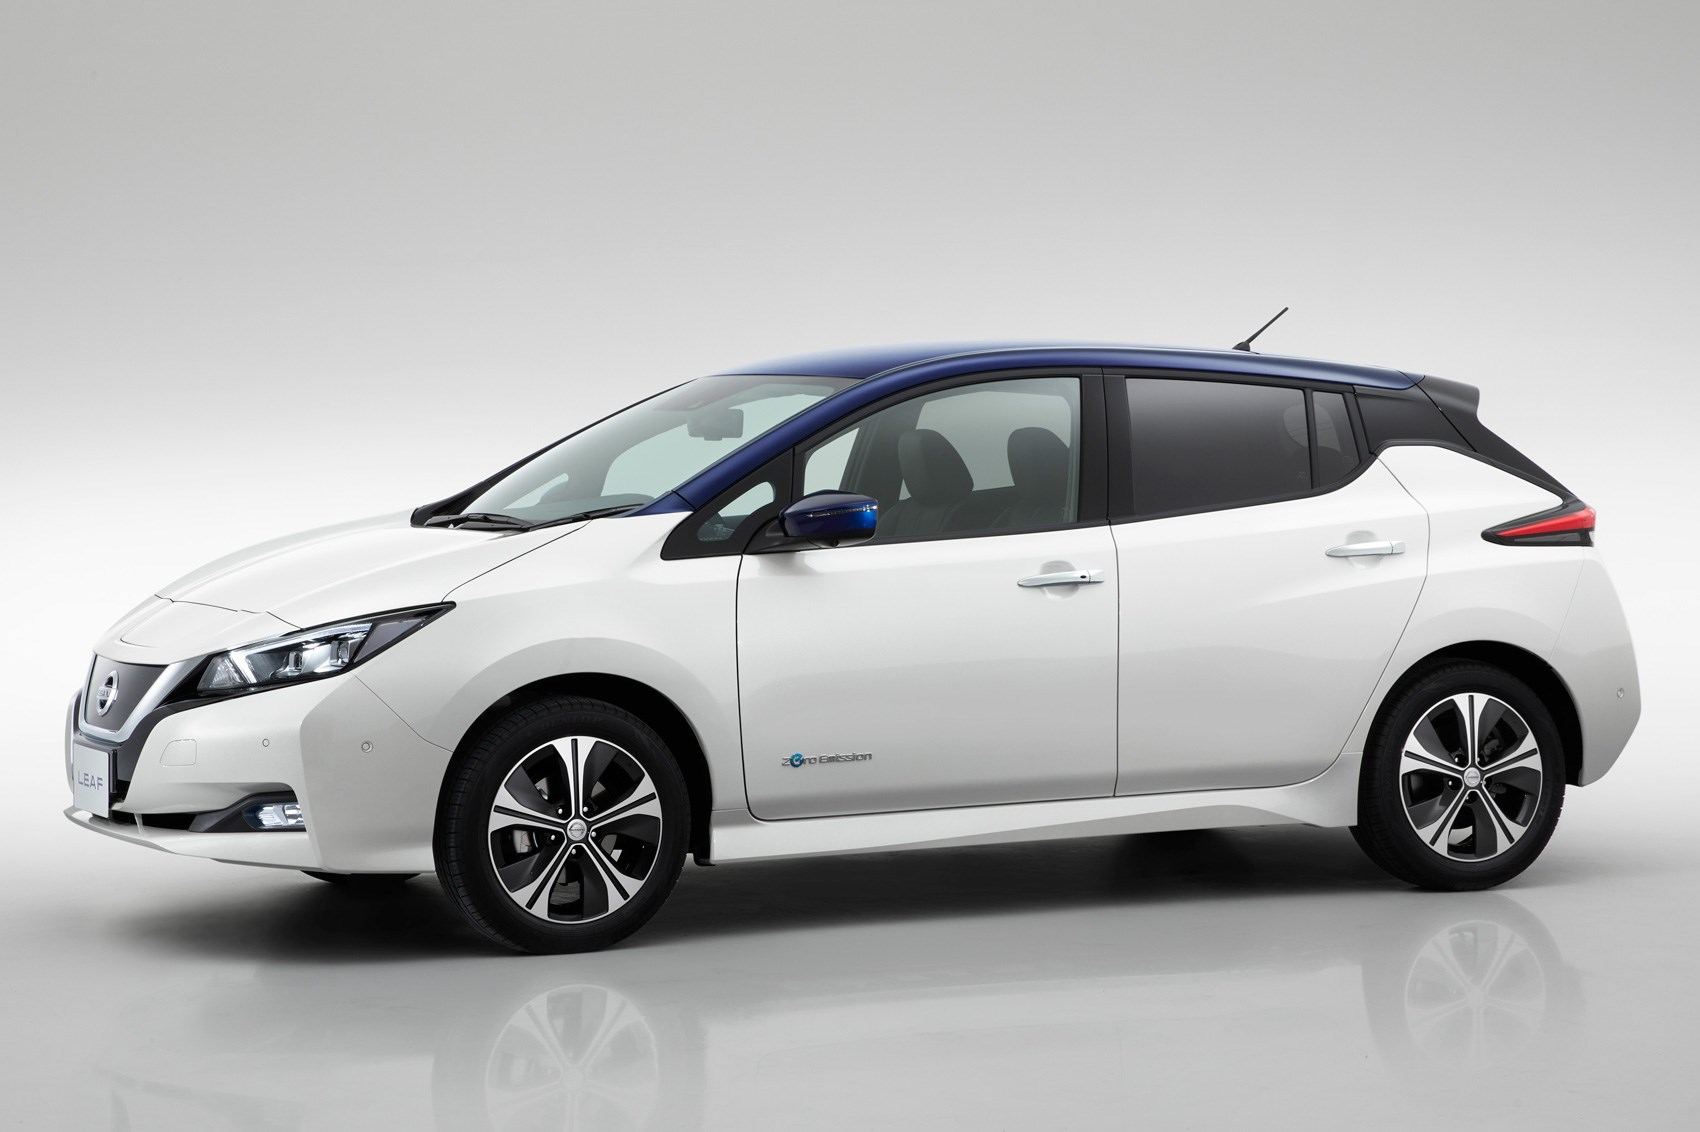 2018 nissan leaf price.  nissan official preview sketch of the new leafu0027s more squat silhouette  throughout 2018 nissan leaf price